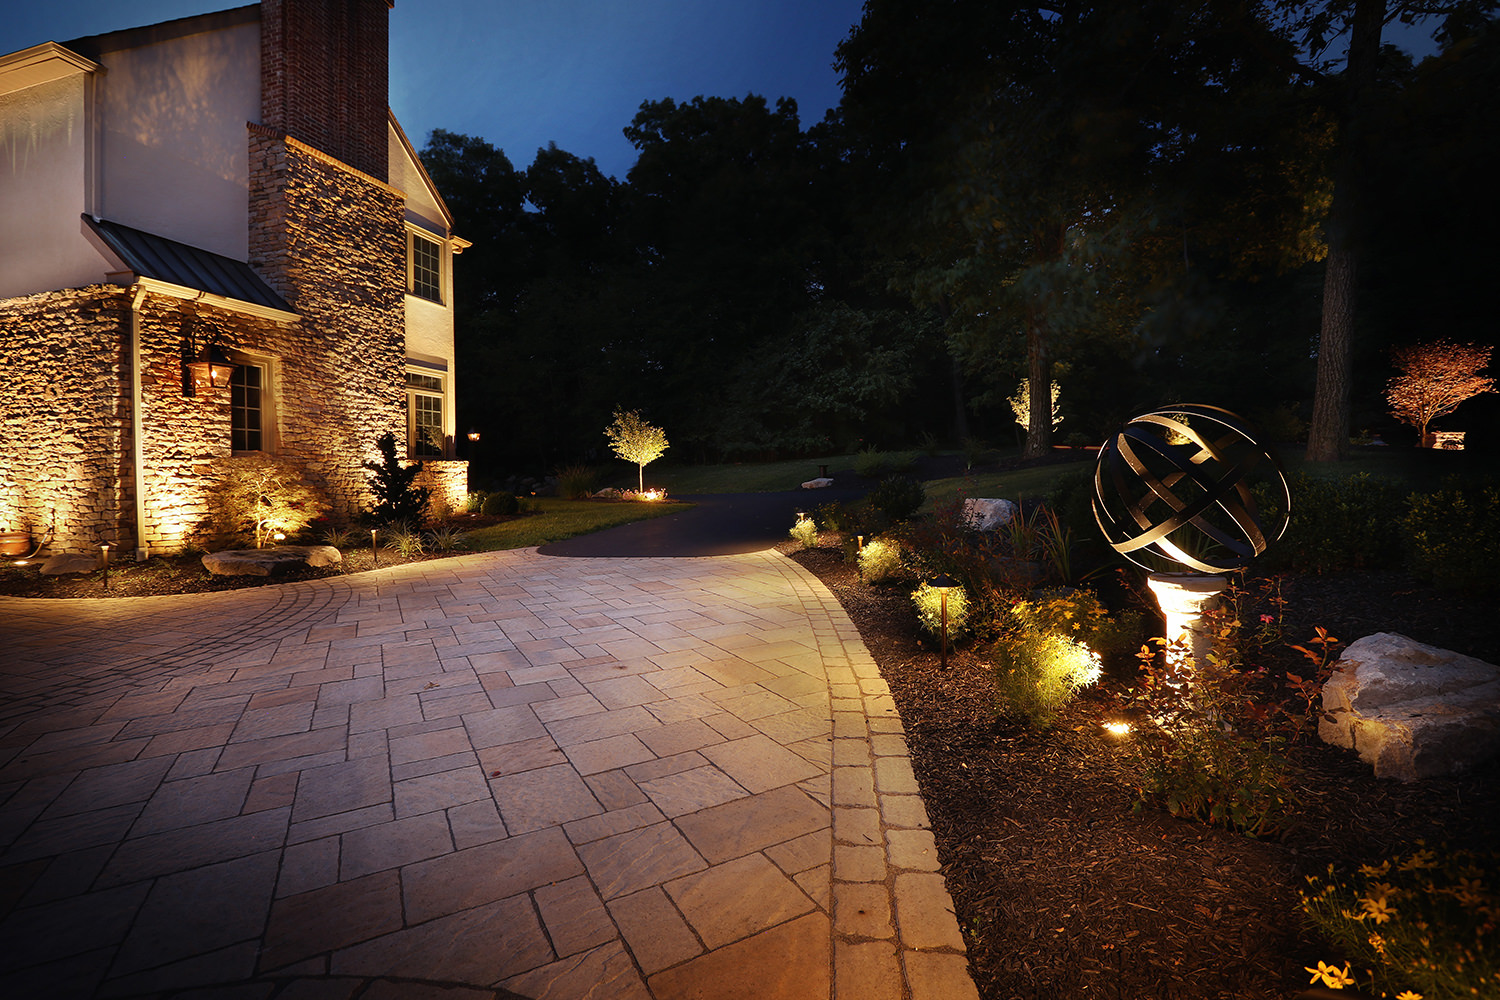 Soft and warm LED landscape lighting beautifully highlights the home and surrounding landscape features once the sun sets for the evening.